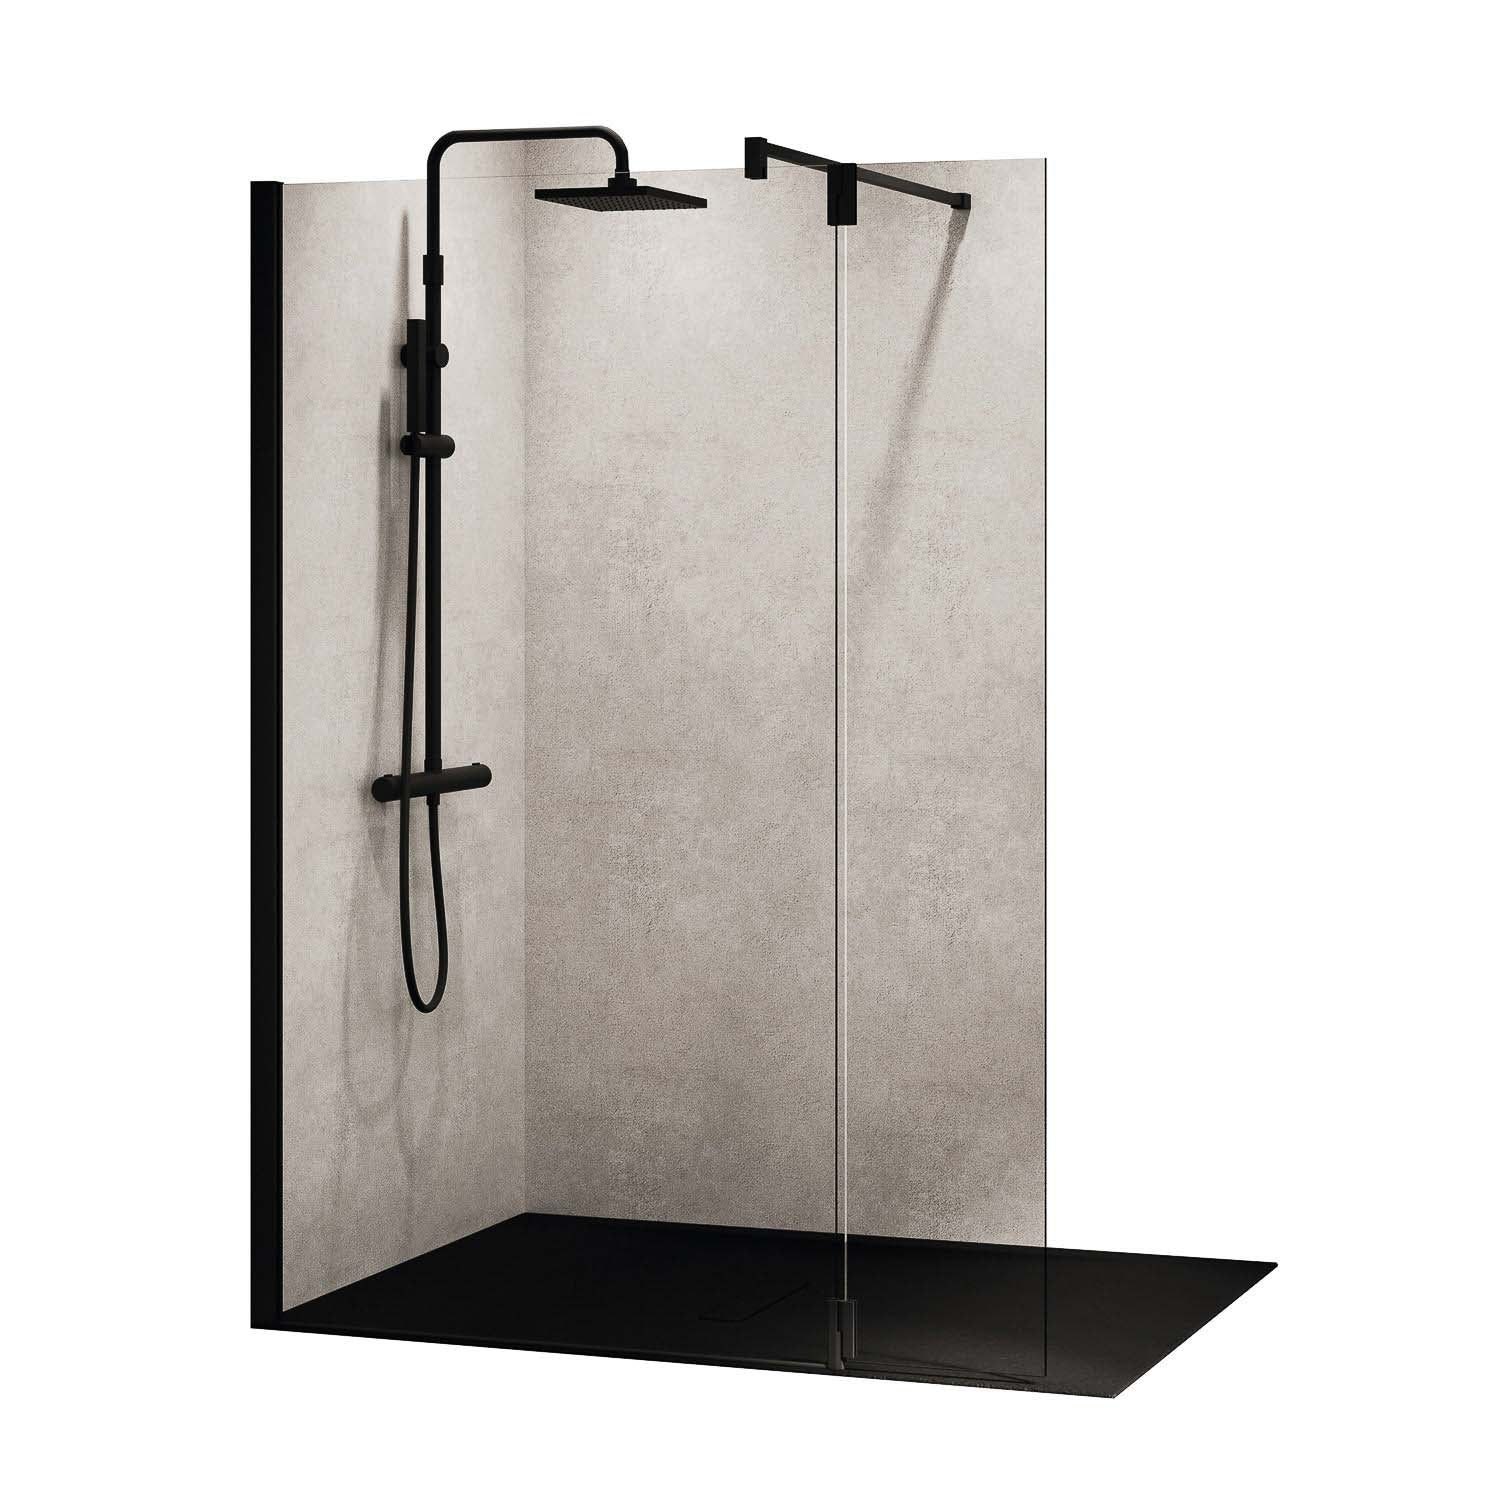 970-1000mm Ergo Wet Room Screen Clear Glass with a matt black finish on a white background